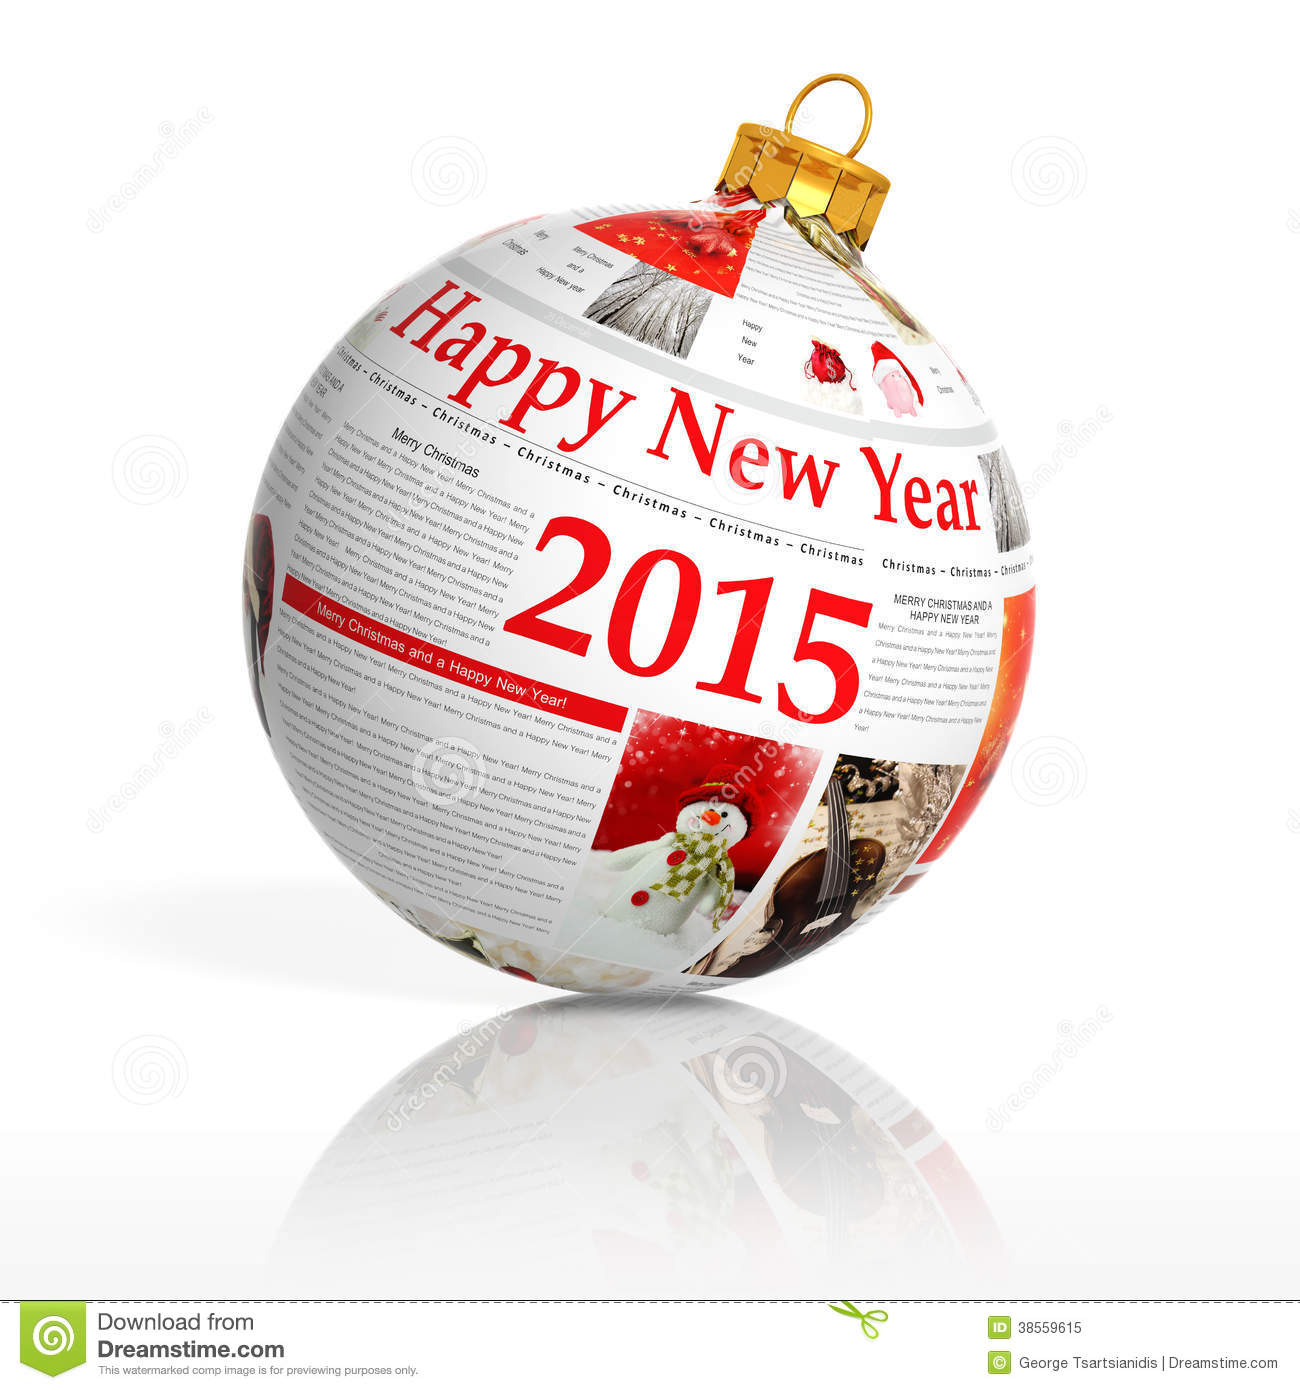 Www Happy New Year 2015 Downlod Com | Search Results | Calendar 2015